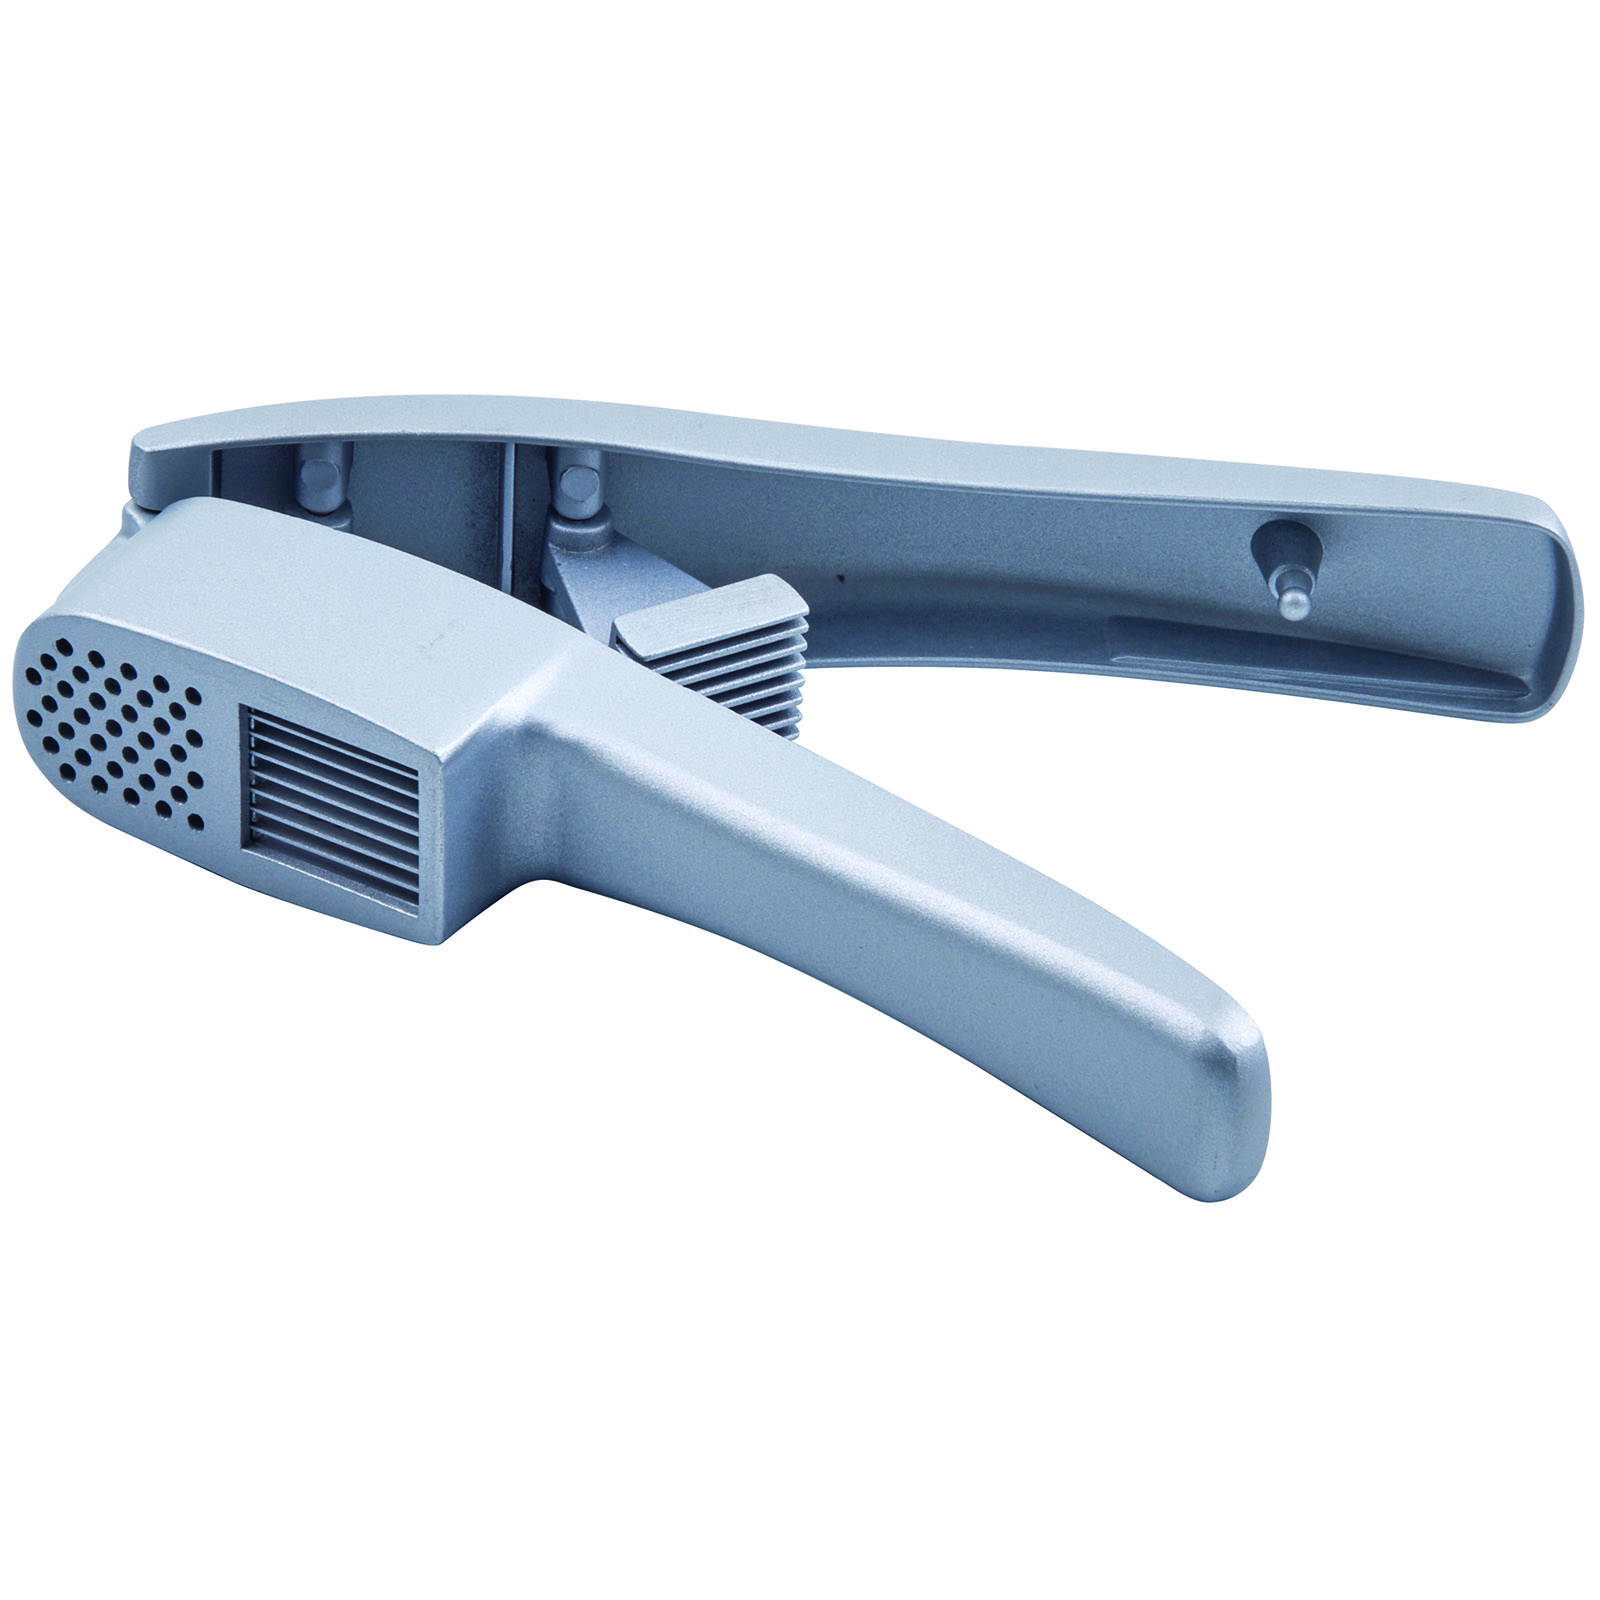 Winco GP-2 garlic press